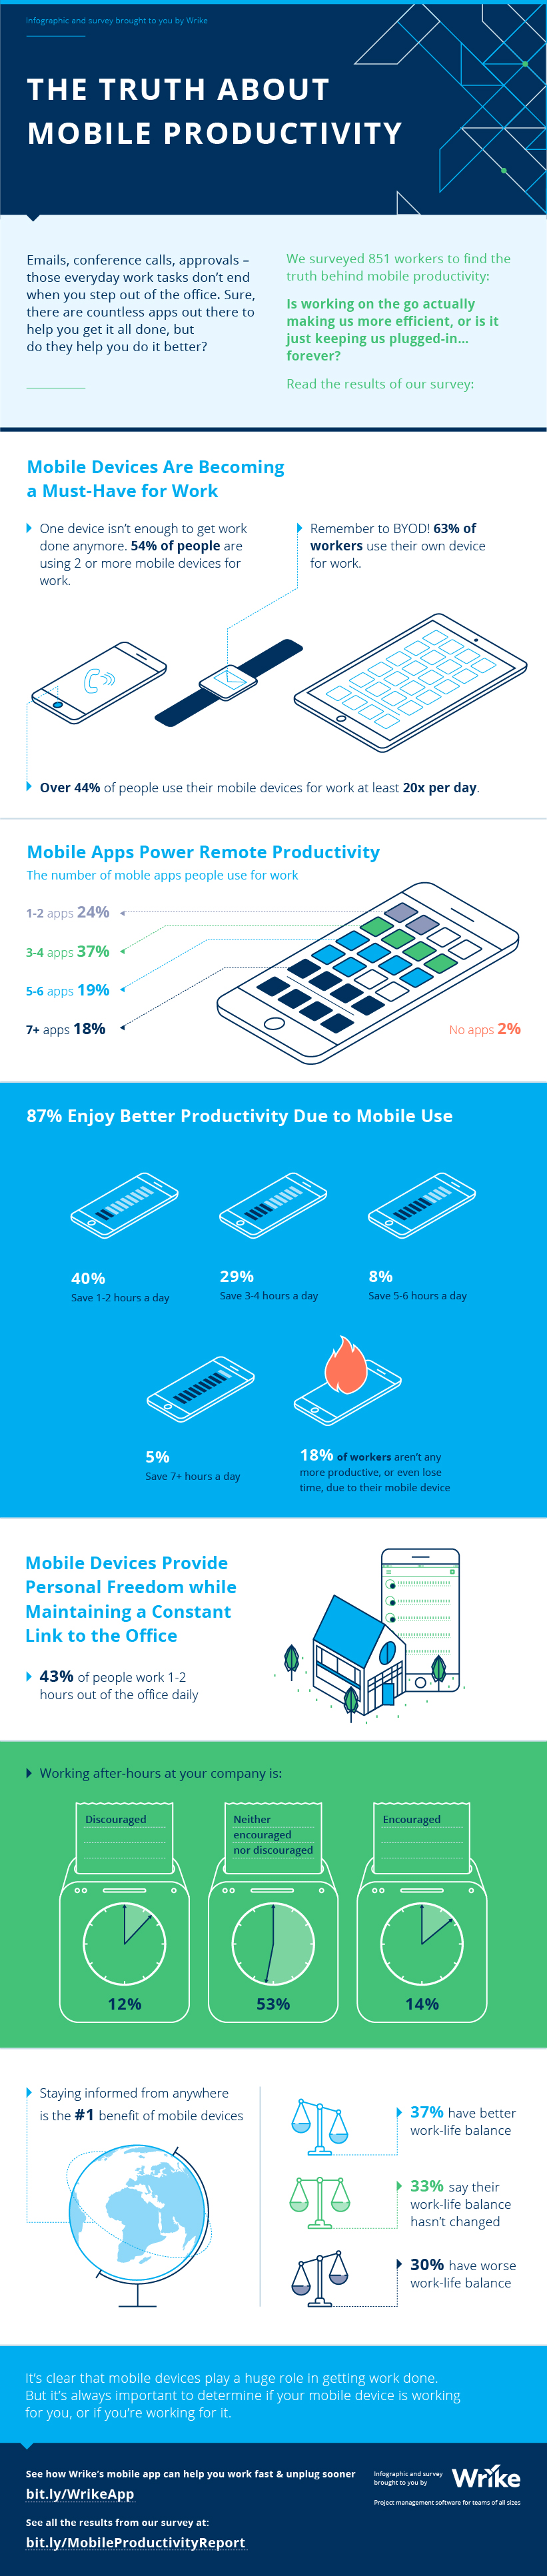 Is Your Mobile Making You More Productive?